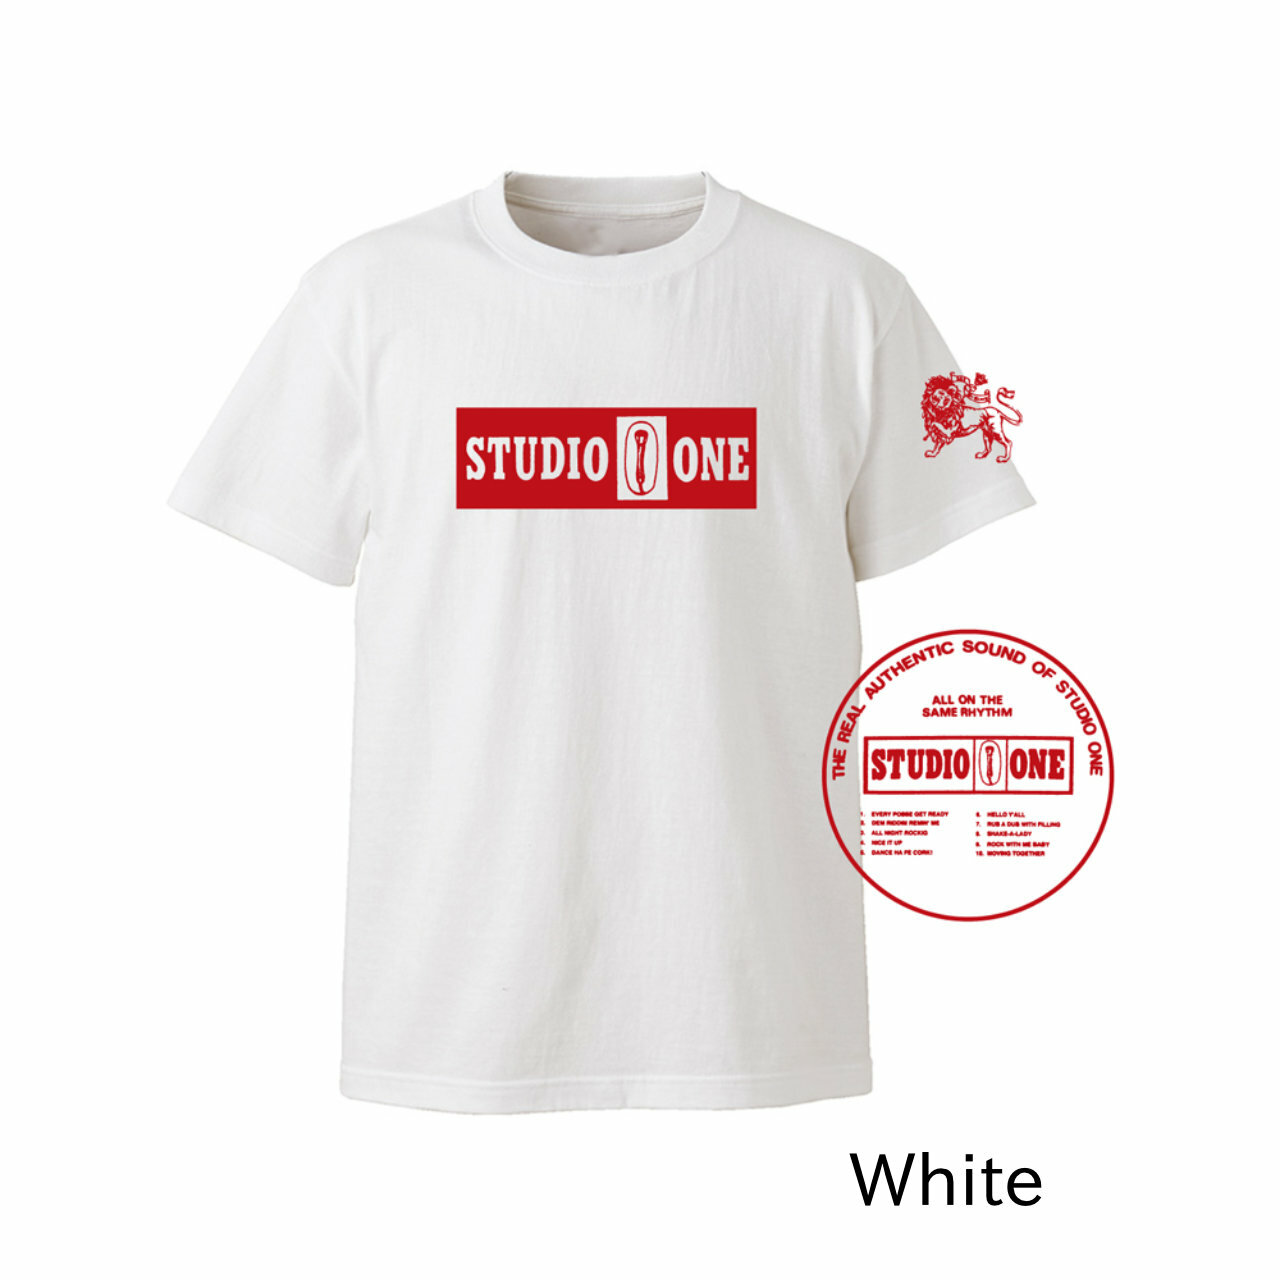 【Or Glory】 STUDIO ONE ジャマイカ SKA Tシャツ 〈White〉